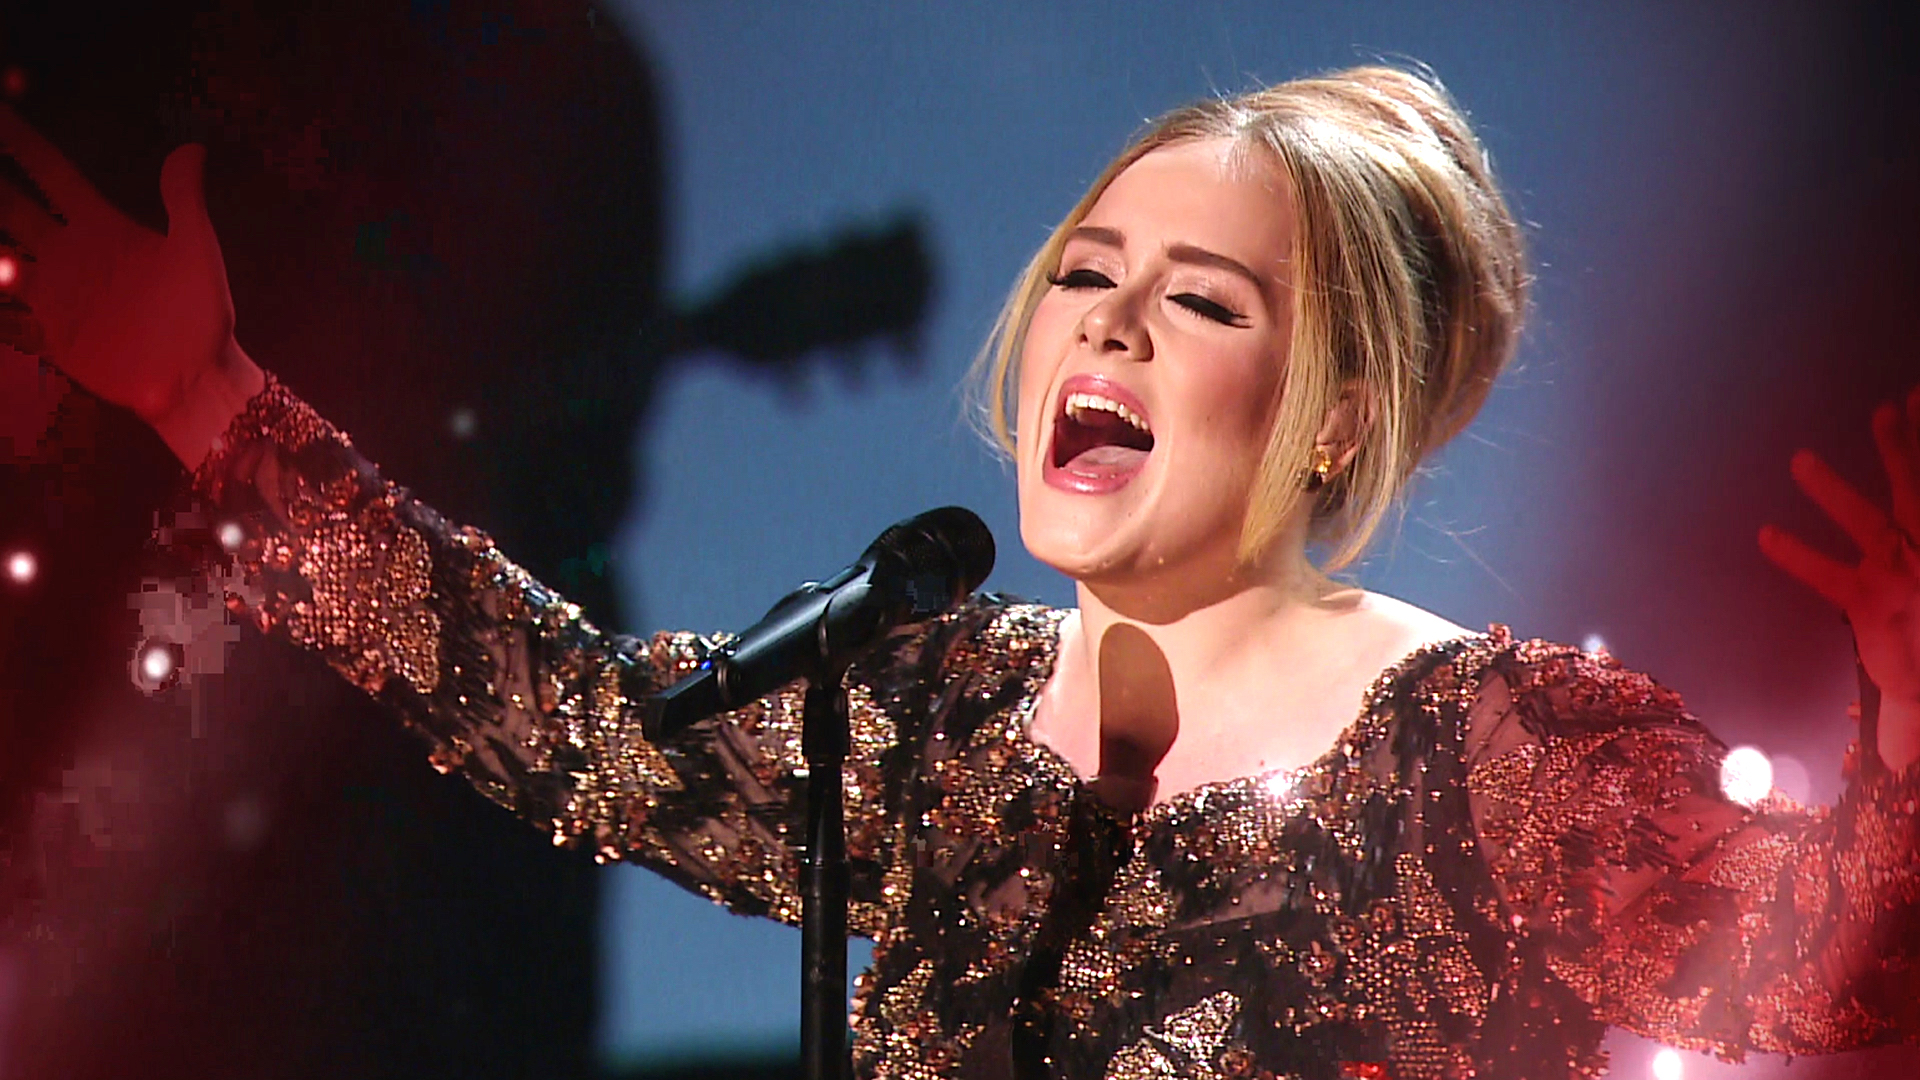 Adele Rocks NYC! [PHOTOS]